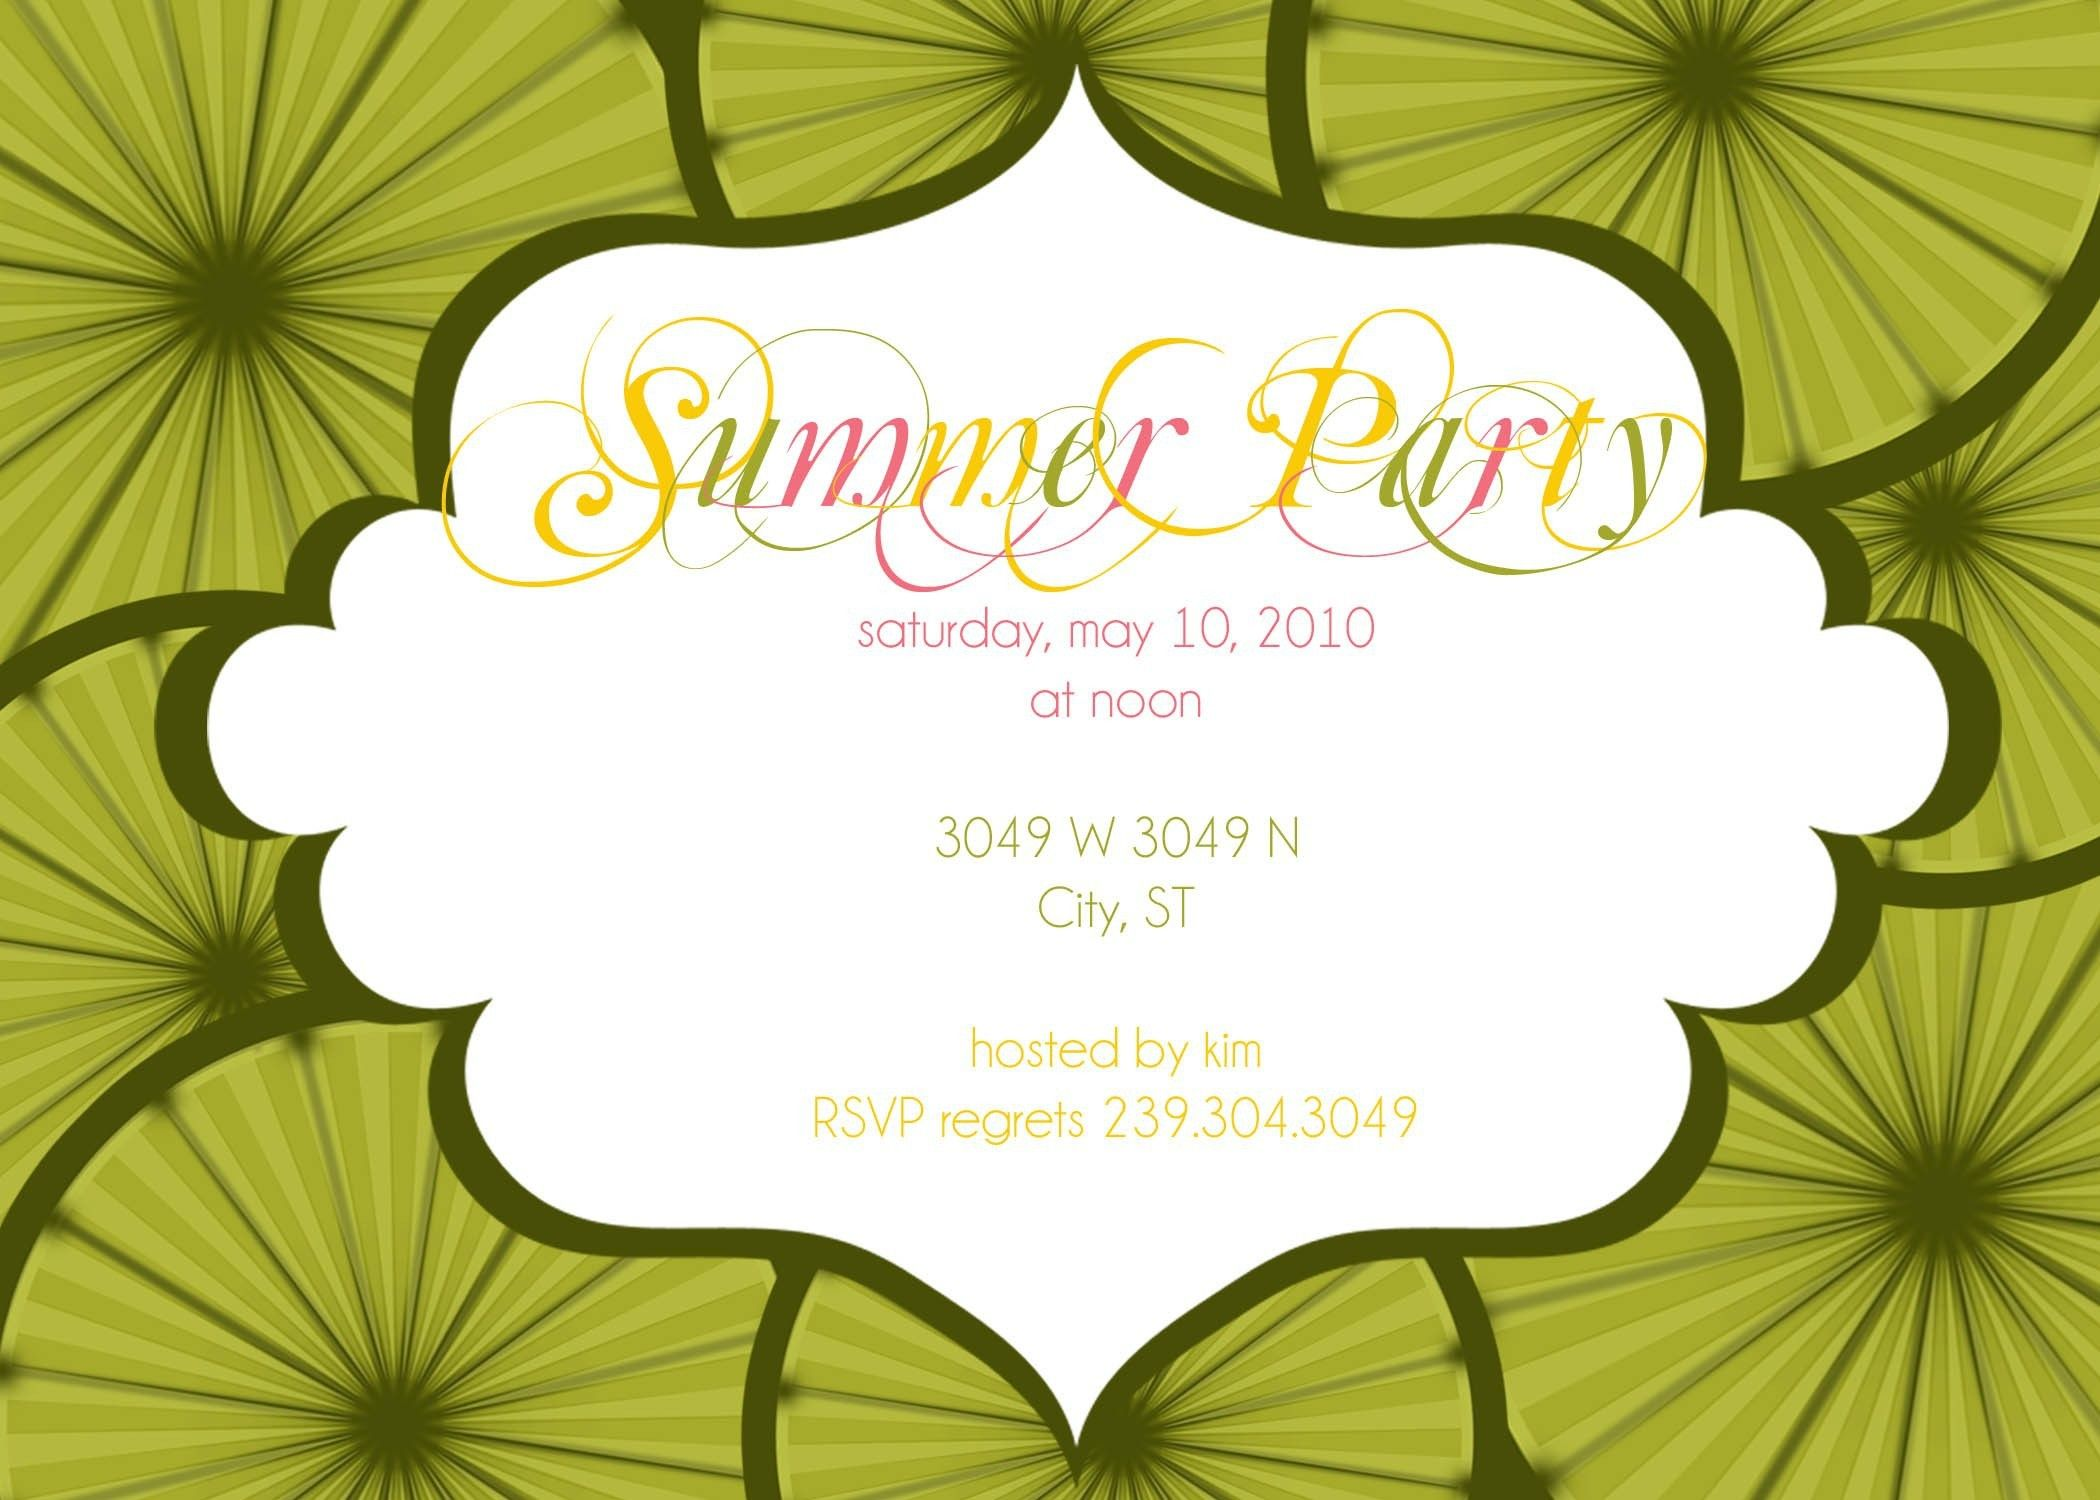 Summer Party Invitation Template Card Invitation Templates Party Invite Template Party Invite Design Summer Party Invitations